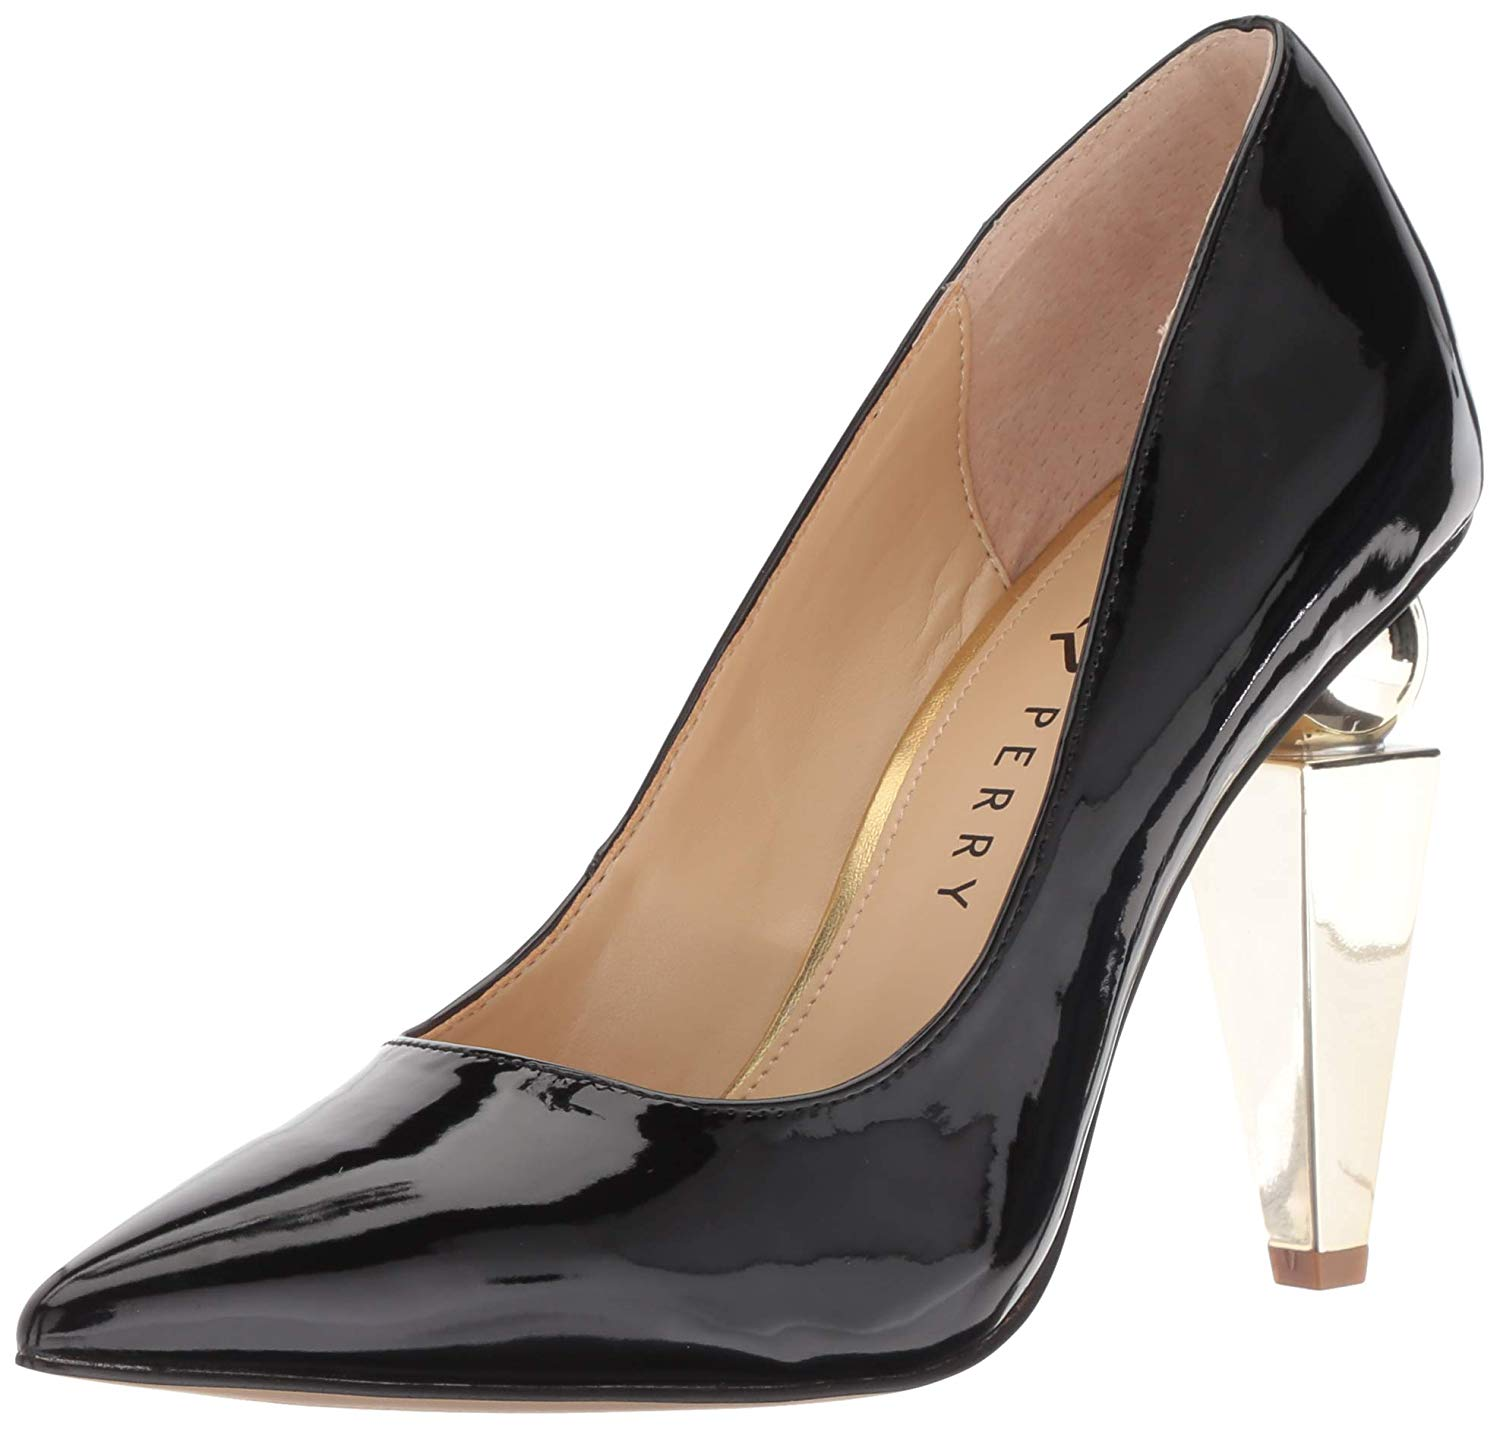 fc76d62fc Katy Perry Womens KP0559 Pointed Toe Ankle Wrap Classic Pumps